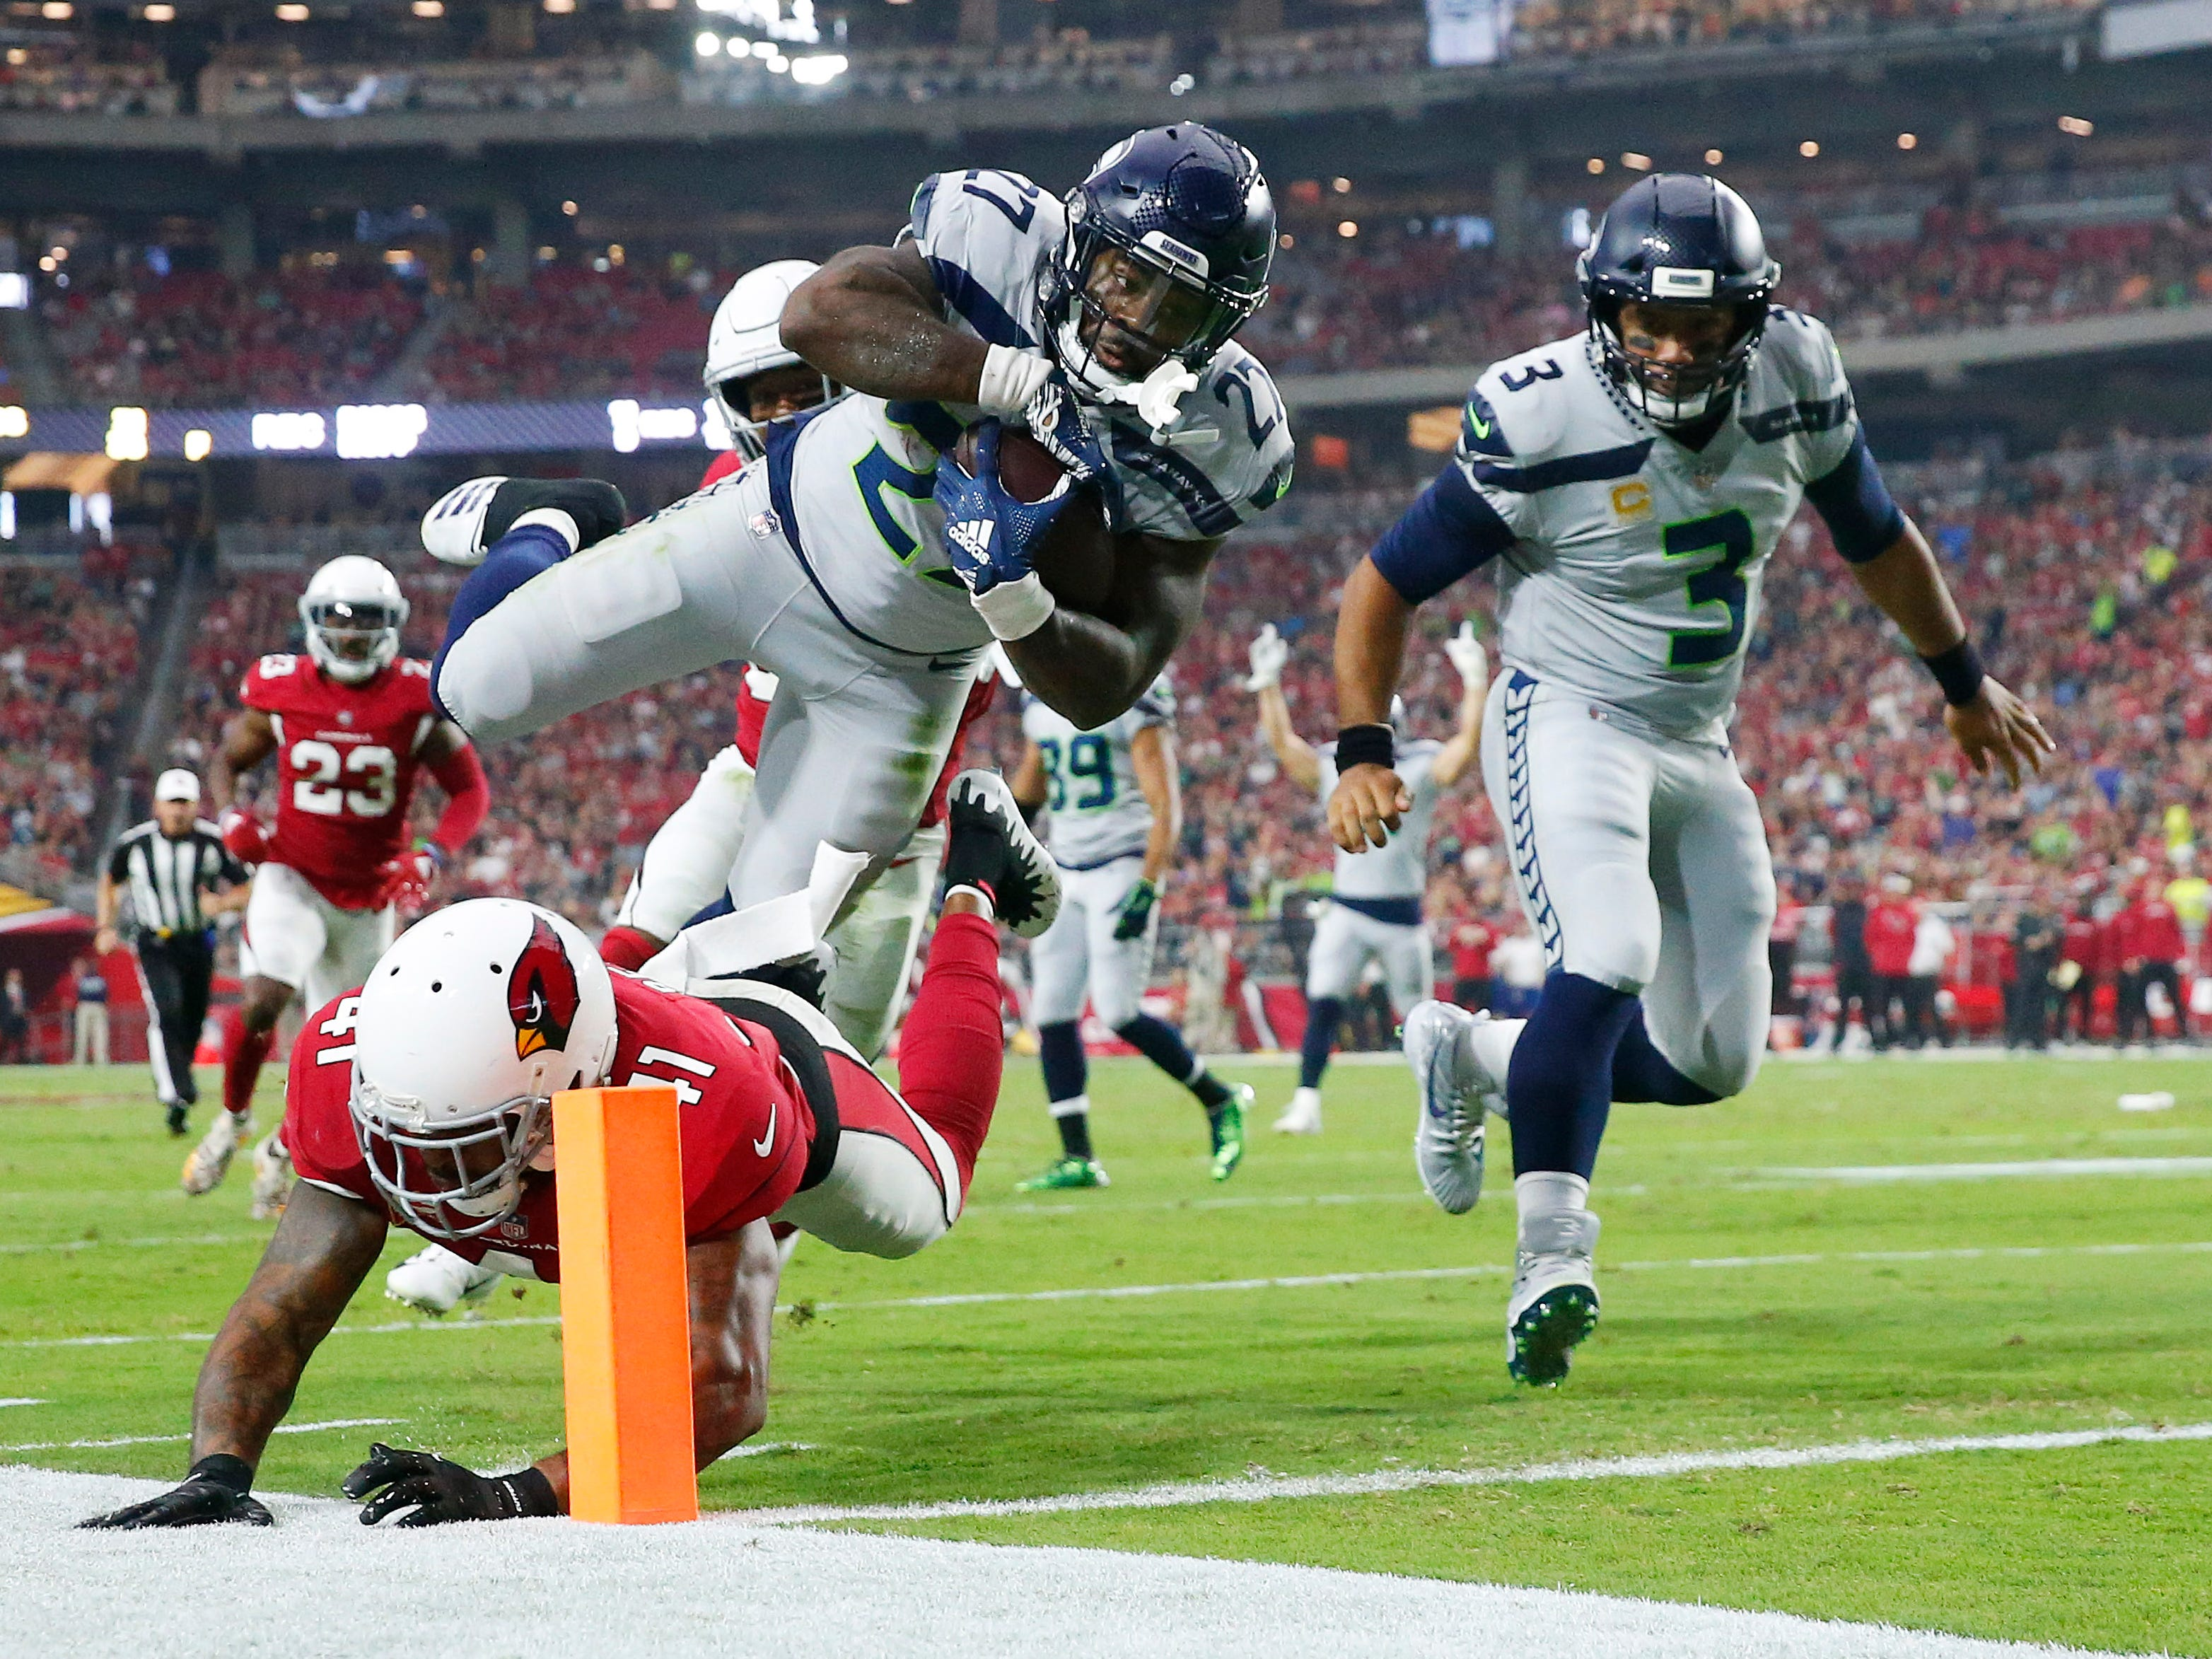 Seattle Seahawks running back Mike Davis (27) scores over Arizona Cardinals defensive back Antoine Bethea (41) during the first quarter at State Farm Stadium in Glendale, Ariz. September 30, 2018.